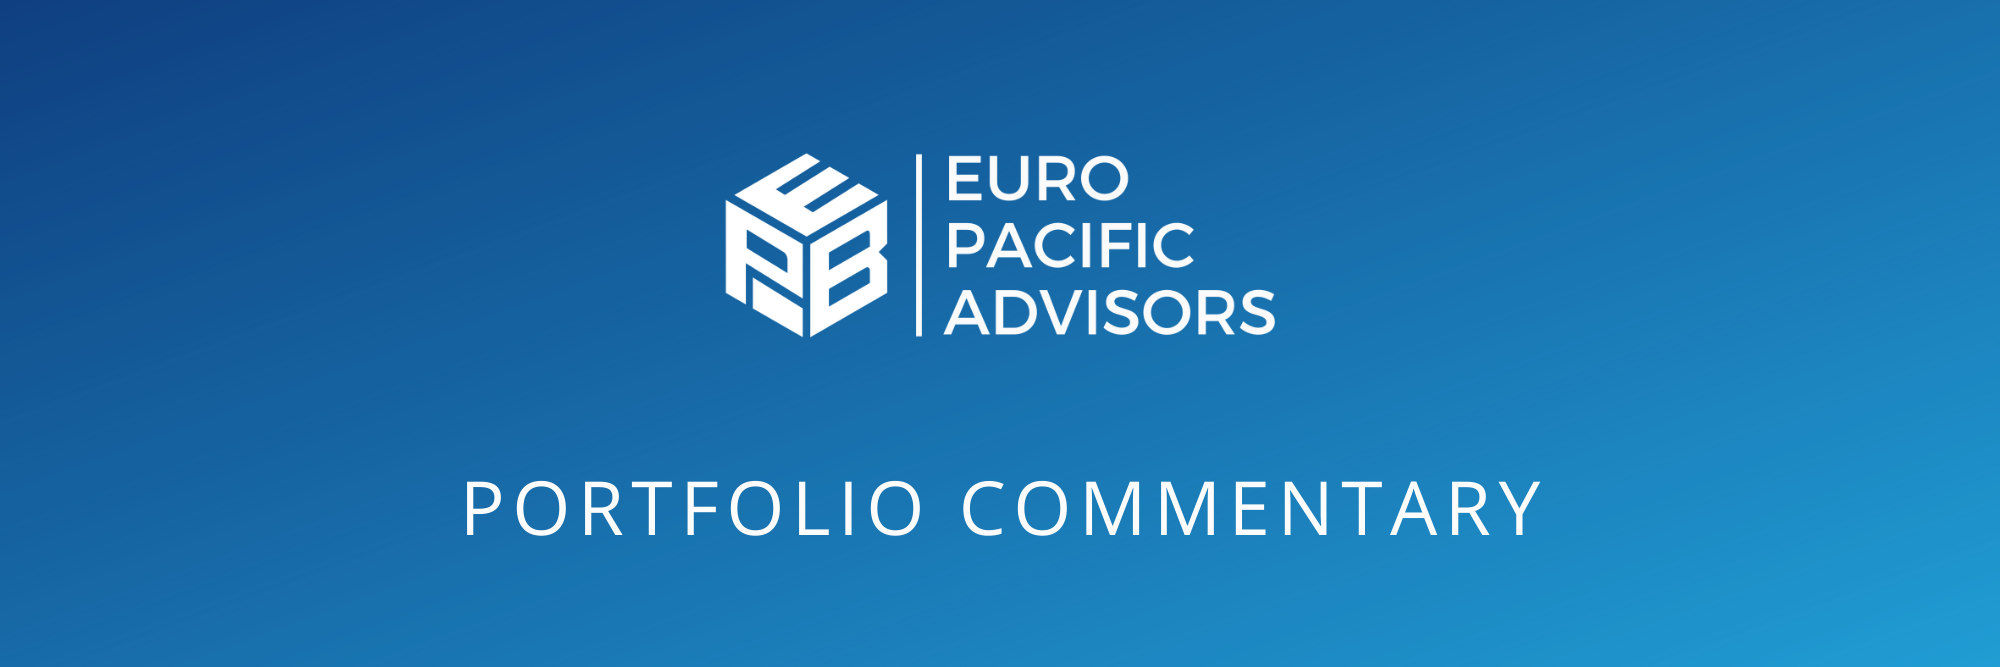 euro pacific advisors fund manager portfolio commentary